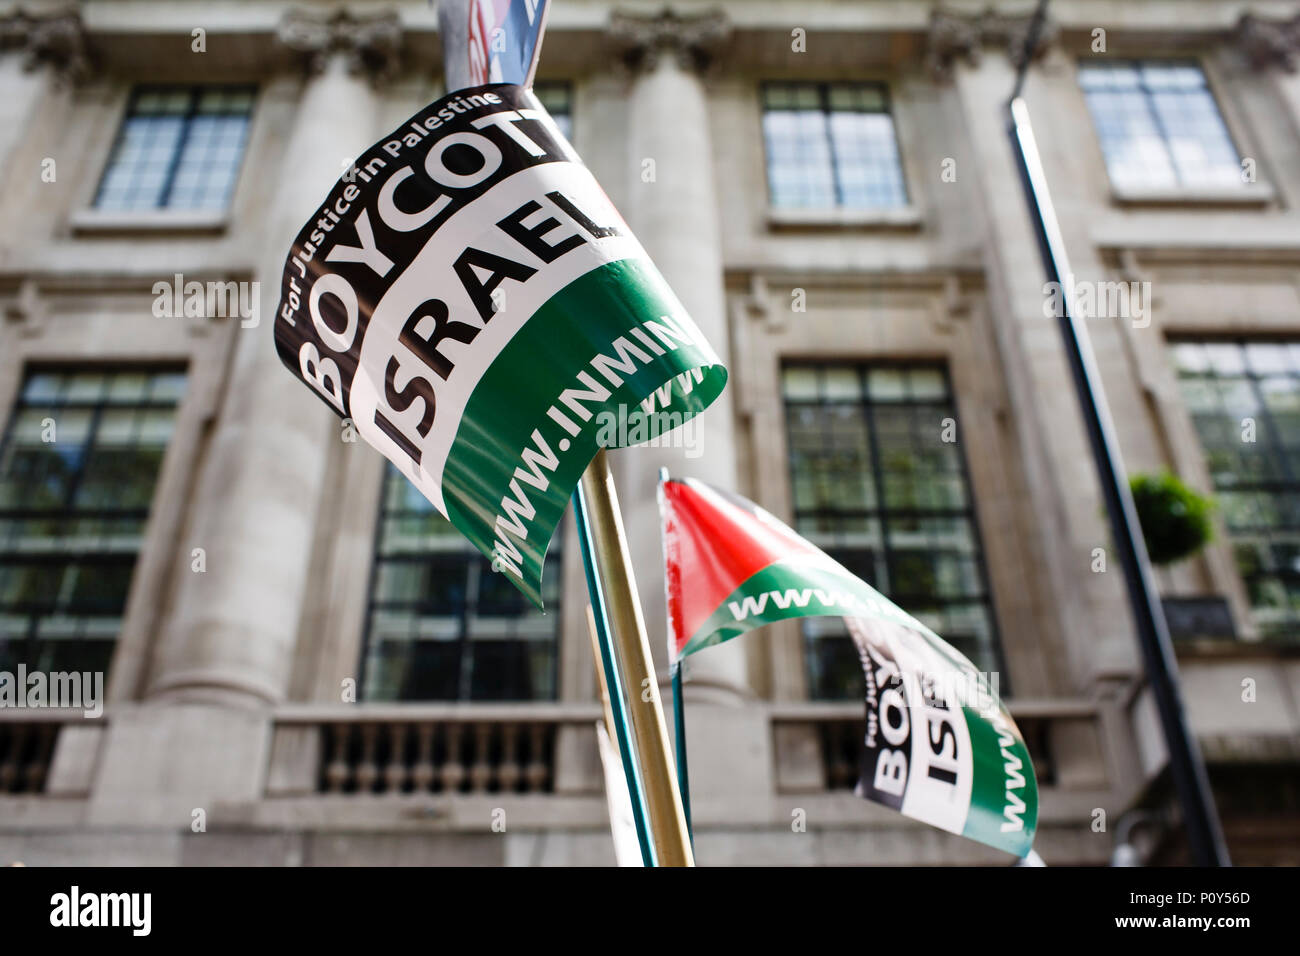 'Boycott Israel' flags are held overhead during the annual pro-Palestine/anti-Israel Al Quds Day demonstration in central London. The demonstration is notably controversial in the city for the flying of Hizbullah flags that typically takes place during the course of it. - Stock Image